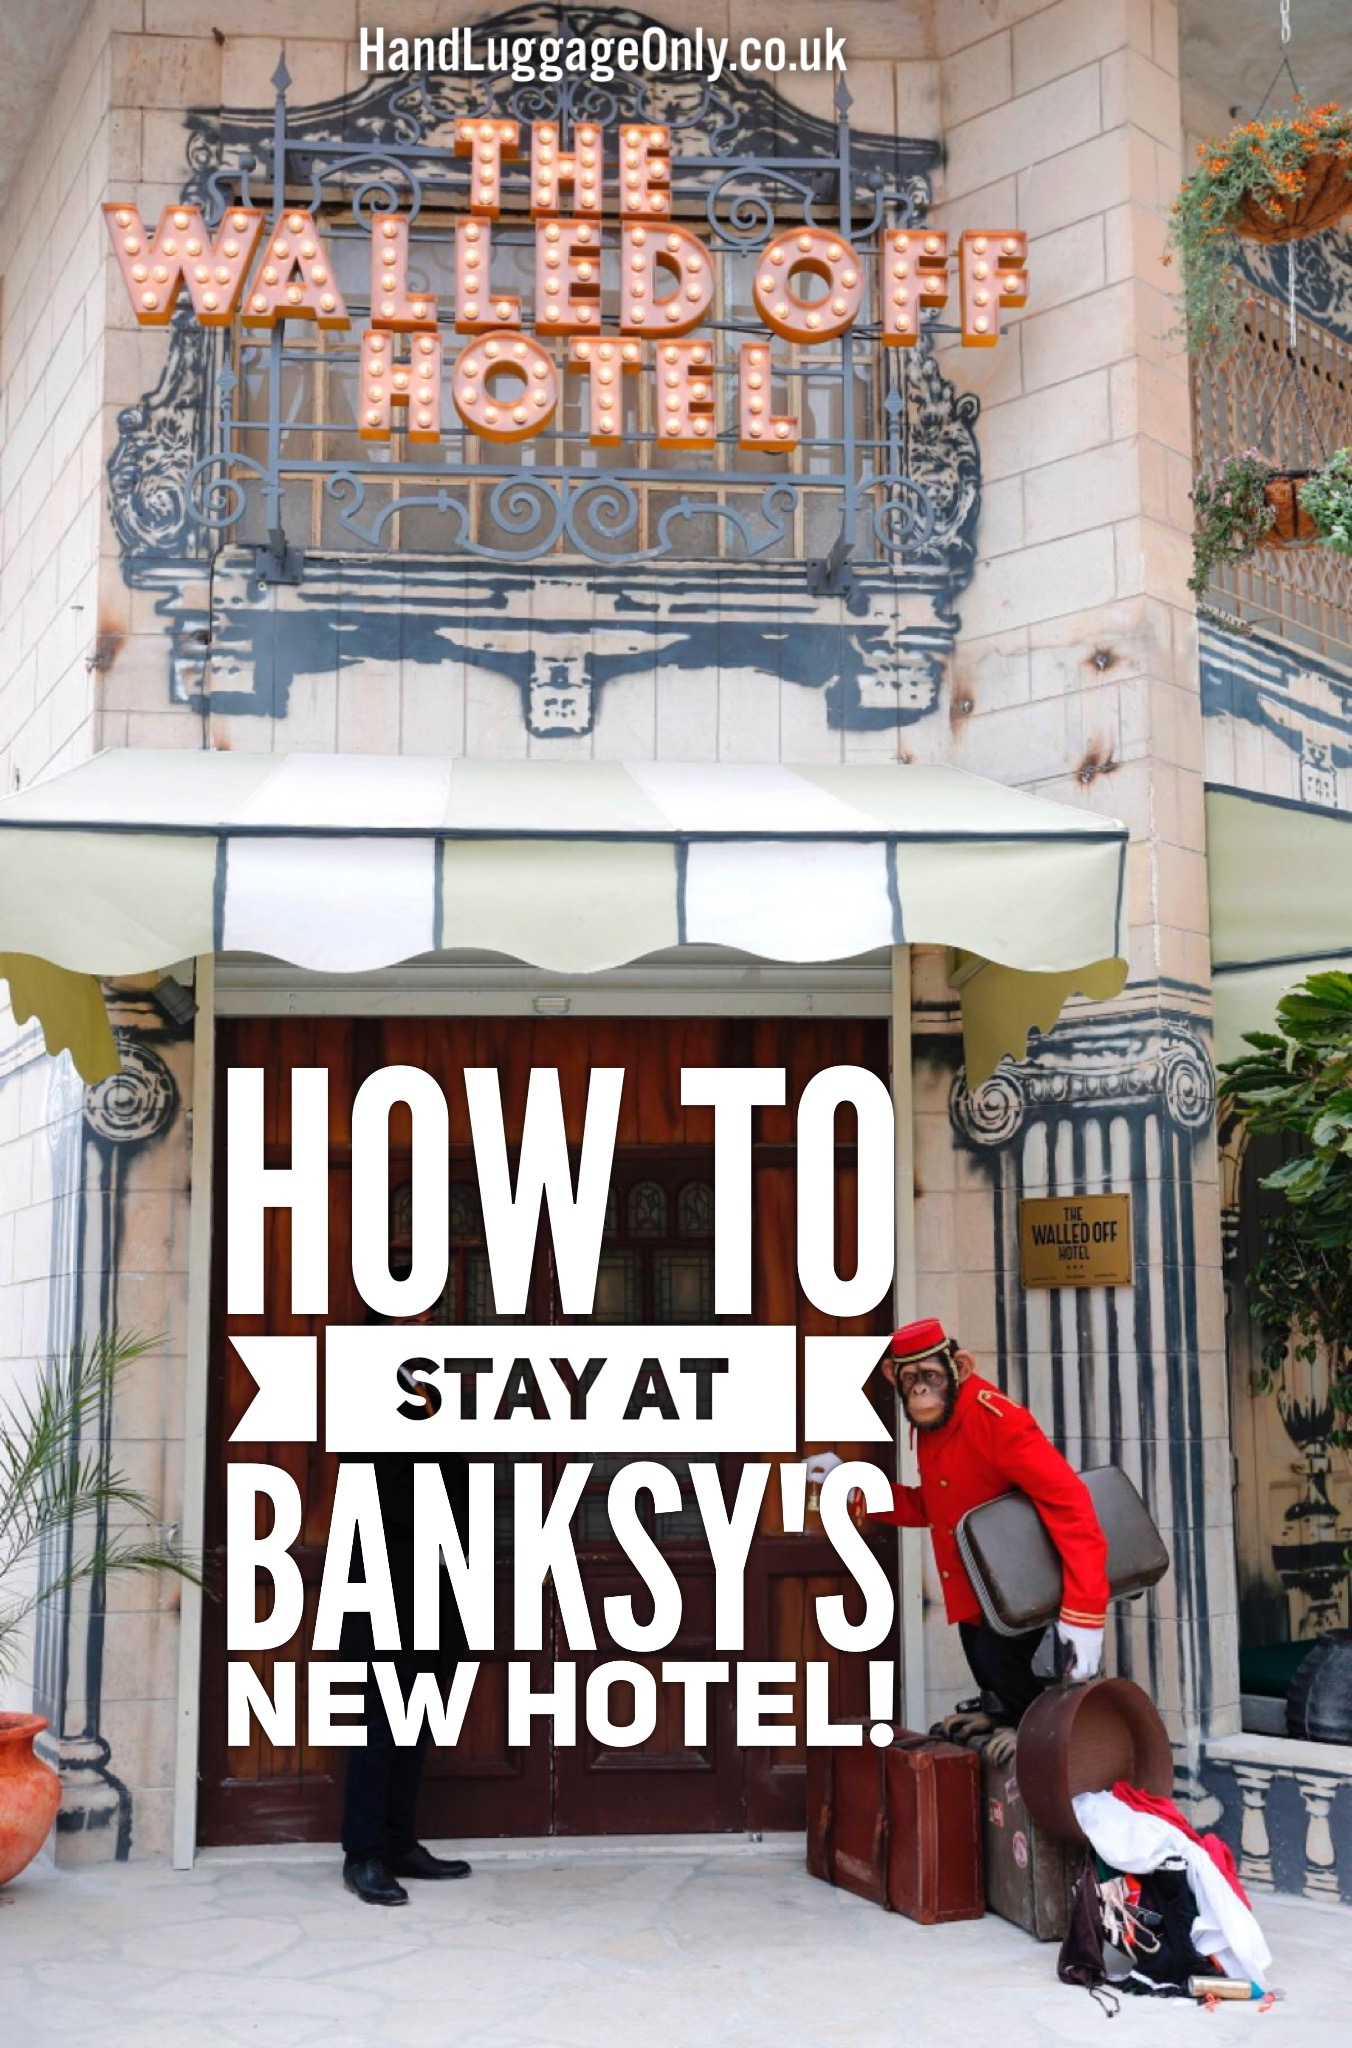 Here's How To Visit Banksy New And Unique Hotel, The Walled Off Hotel! (1)